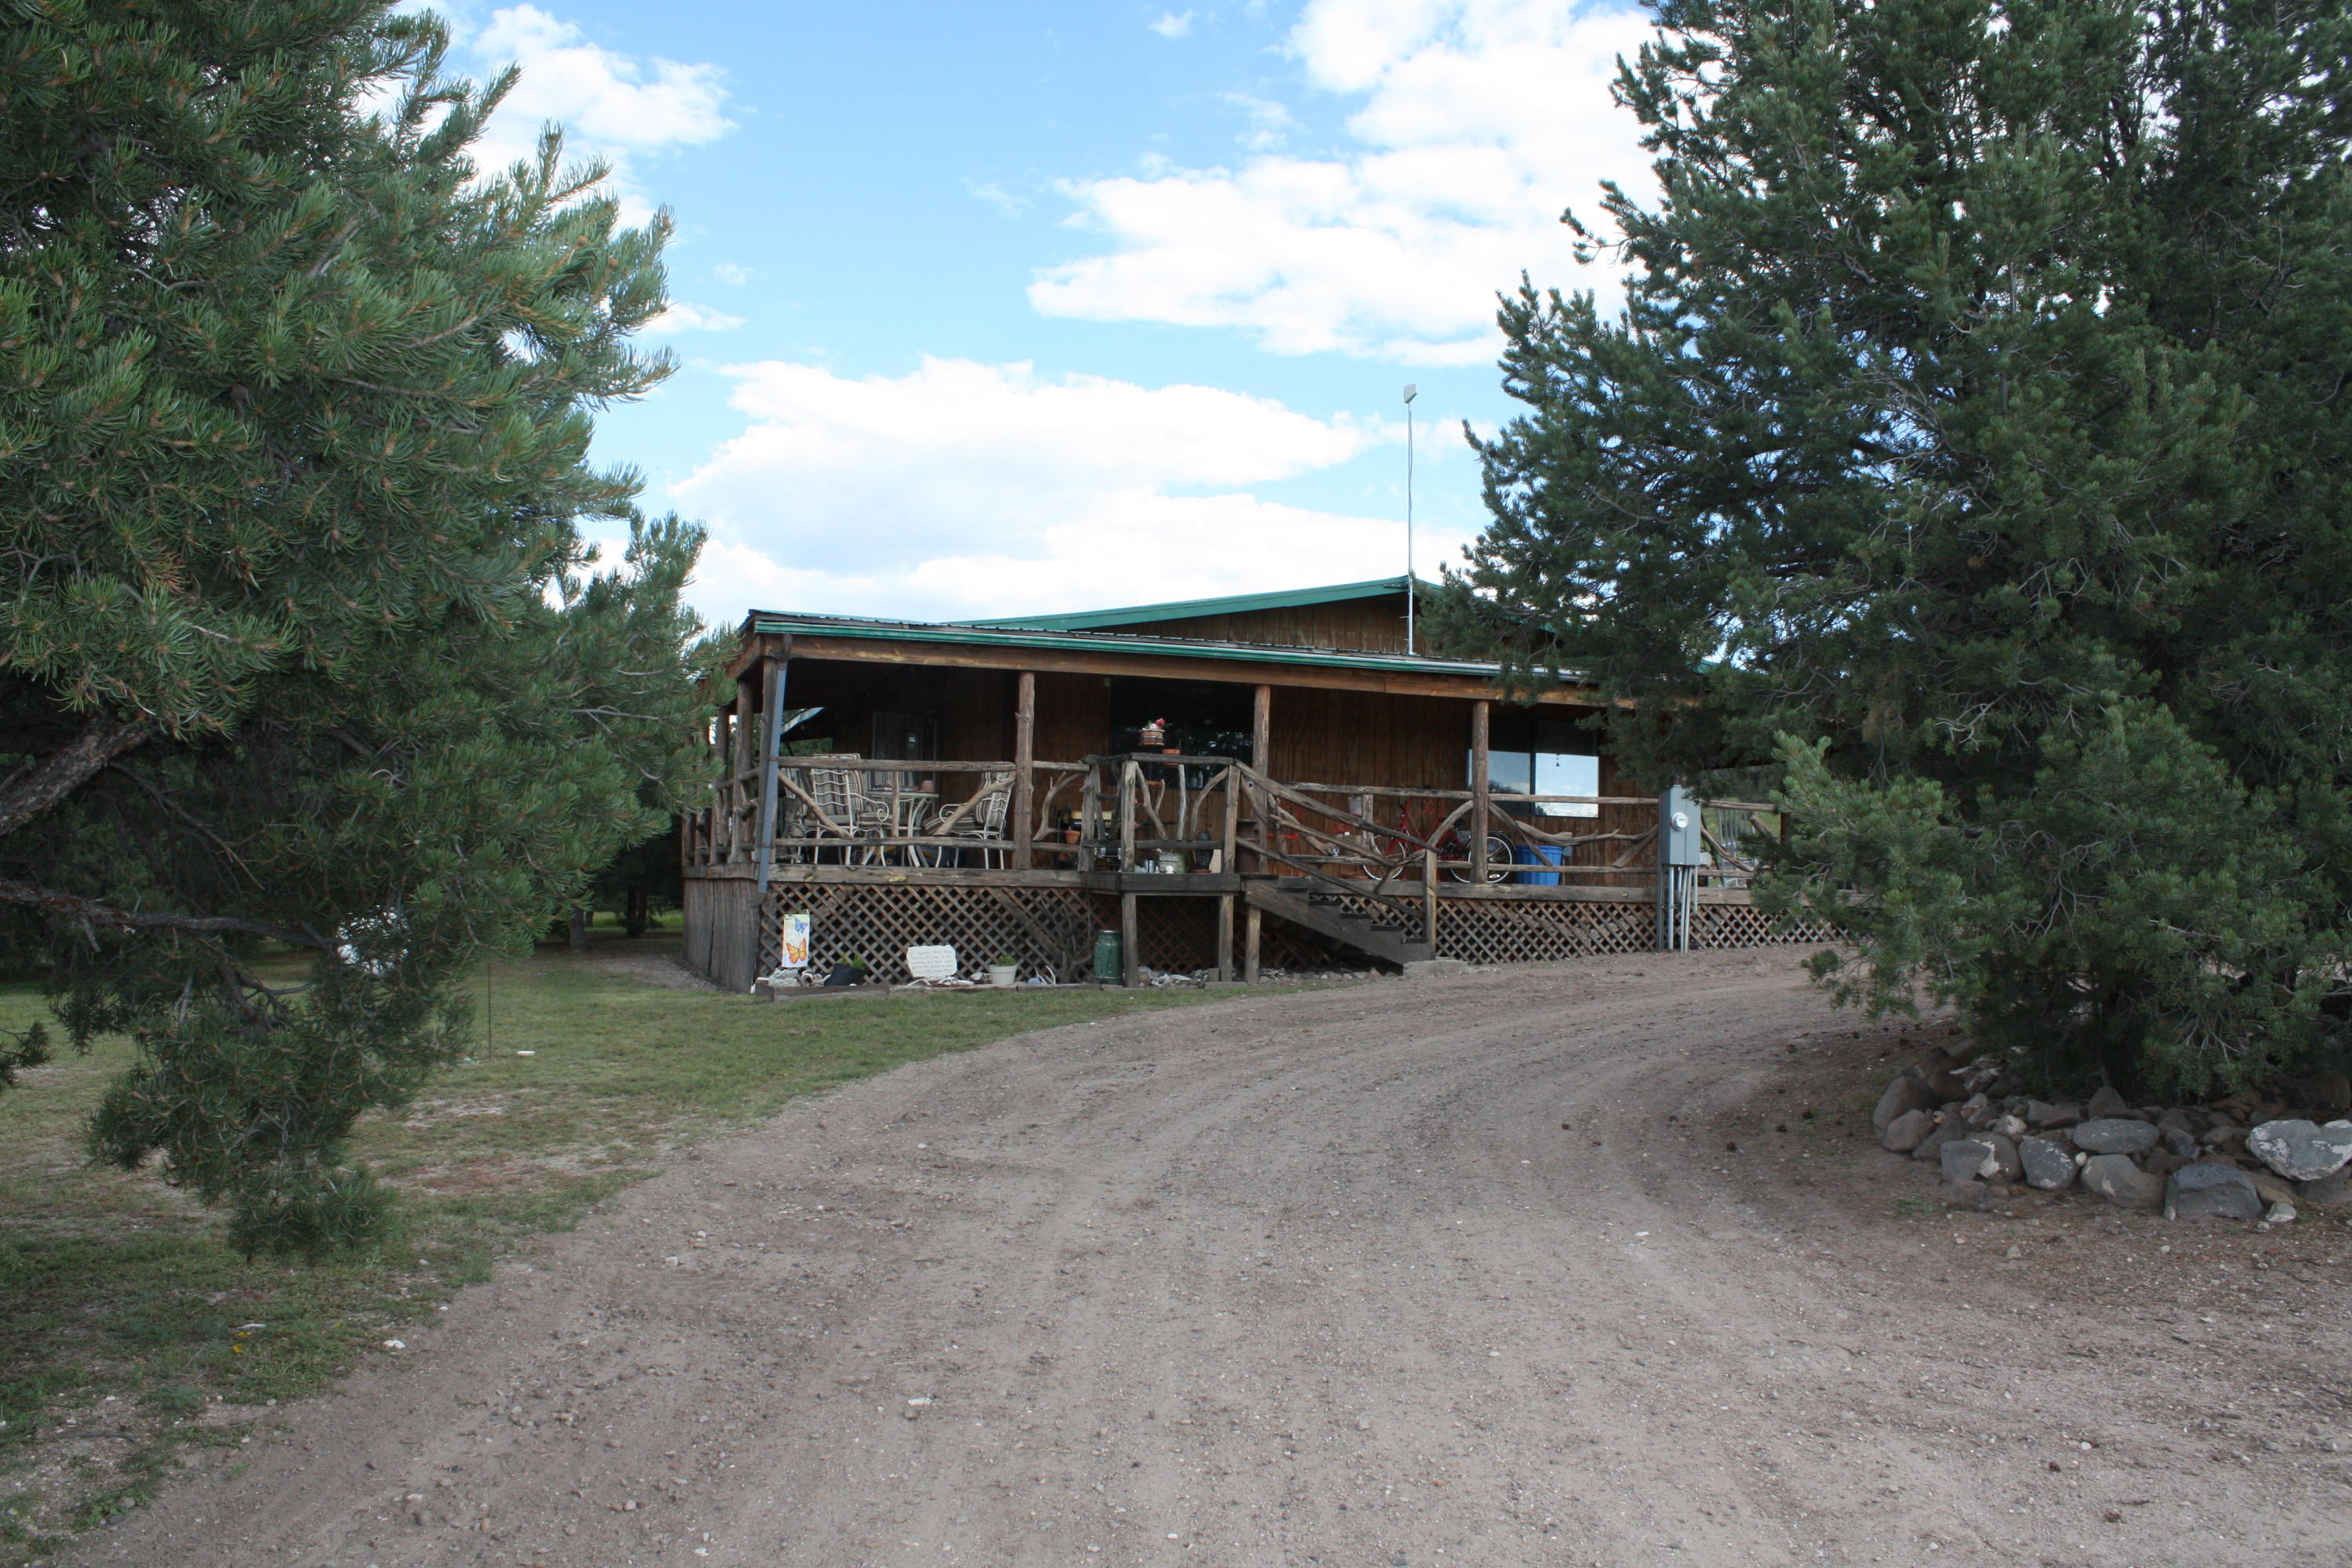 160 Horseshoe Trail, Quemado, NM 87829 - Quemado, NM real estate listing